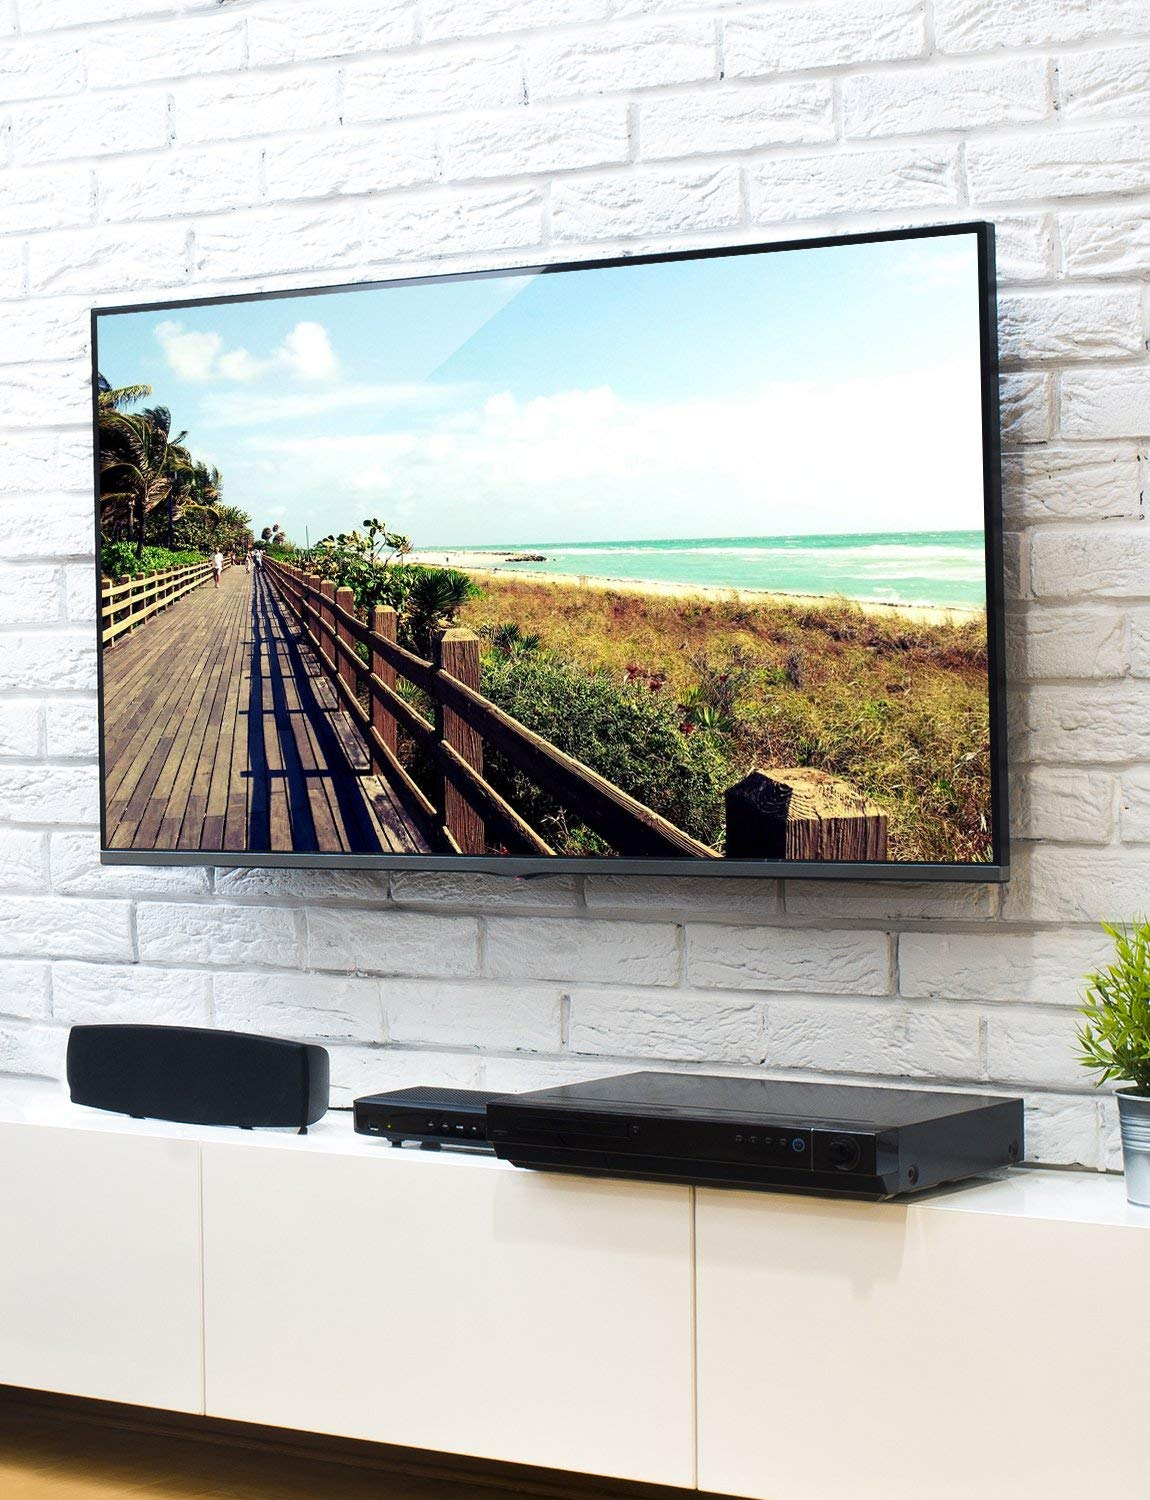 Fortress Mount TV Wall Mount for Most 40-75'' TVs up to 165 lbs and 9-feet HDMI Cable by Fortress Mount (Image #7)